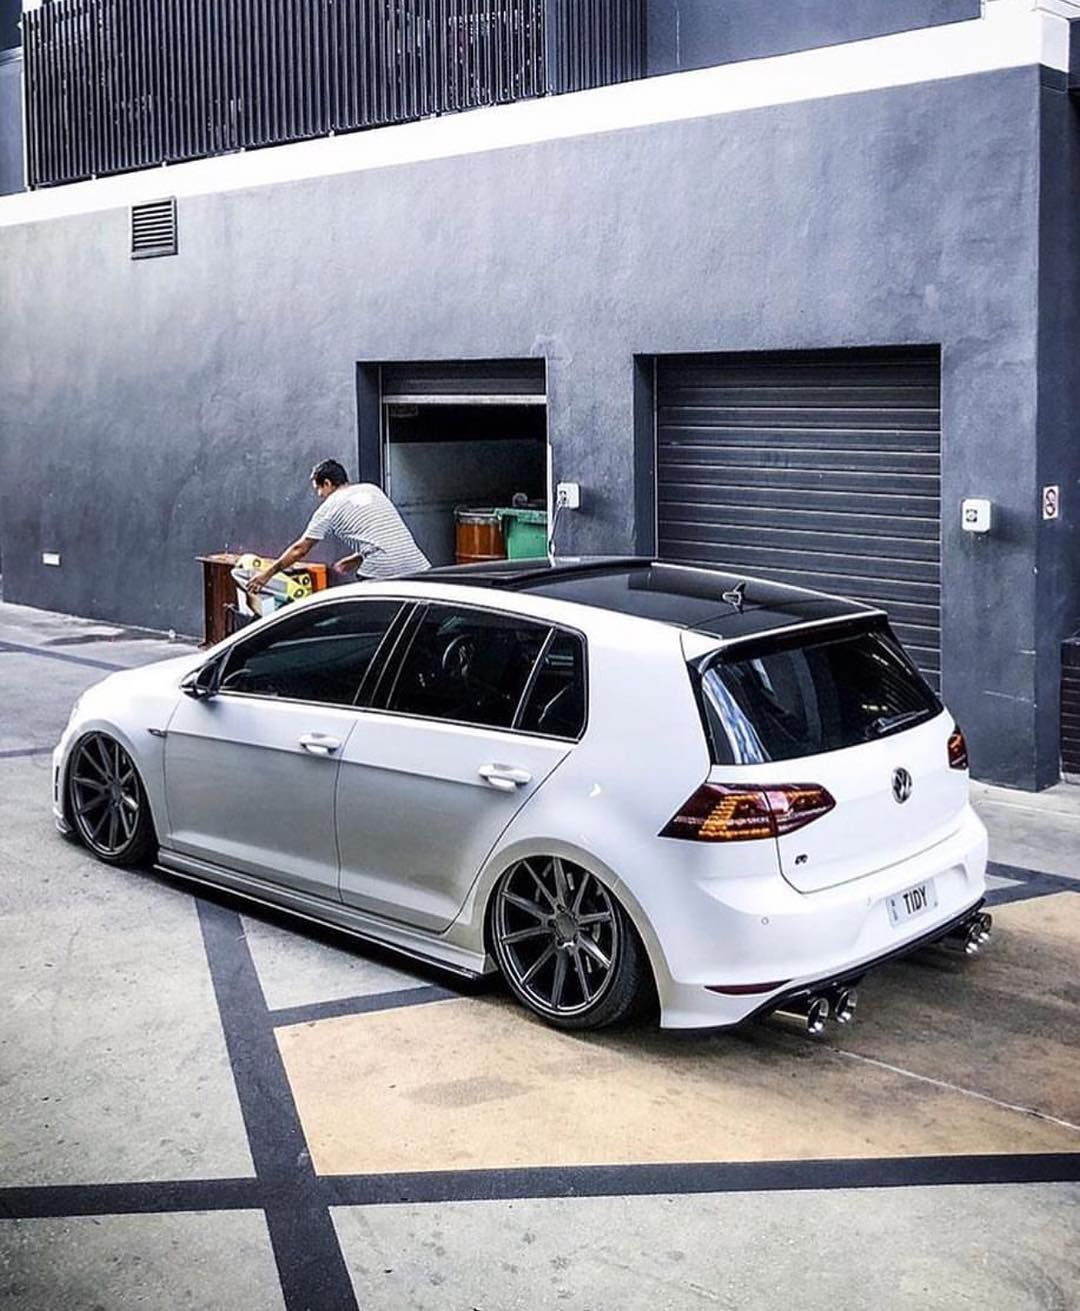 Mk7 R Rate It 1 10 Photo Via Tidy7r Mk5 Gti Vwgolf Vwlove Mk4 Golf R32 Mk6 Mk7 Golf4 Golf5 Golf6 G Carros Carros Personalizados Acessorios Para Motos